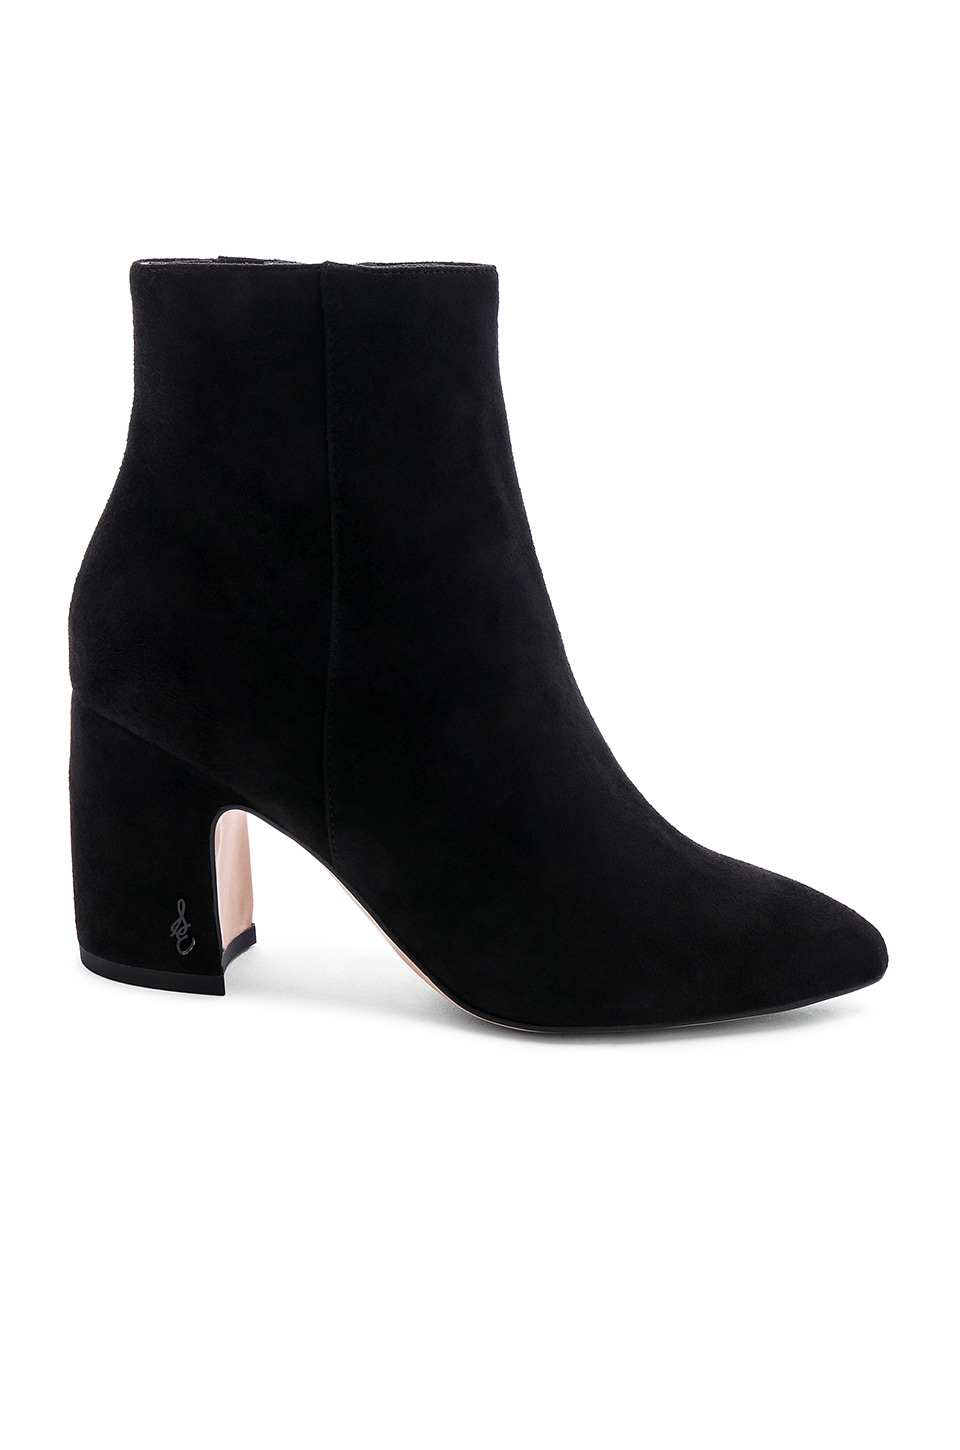 Sam Edelman Hilty Suede Bootie in Black